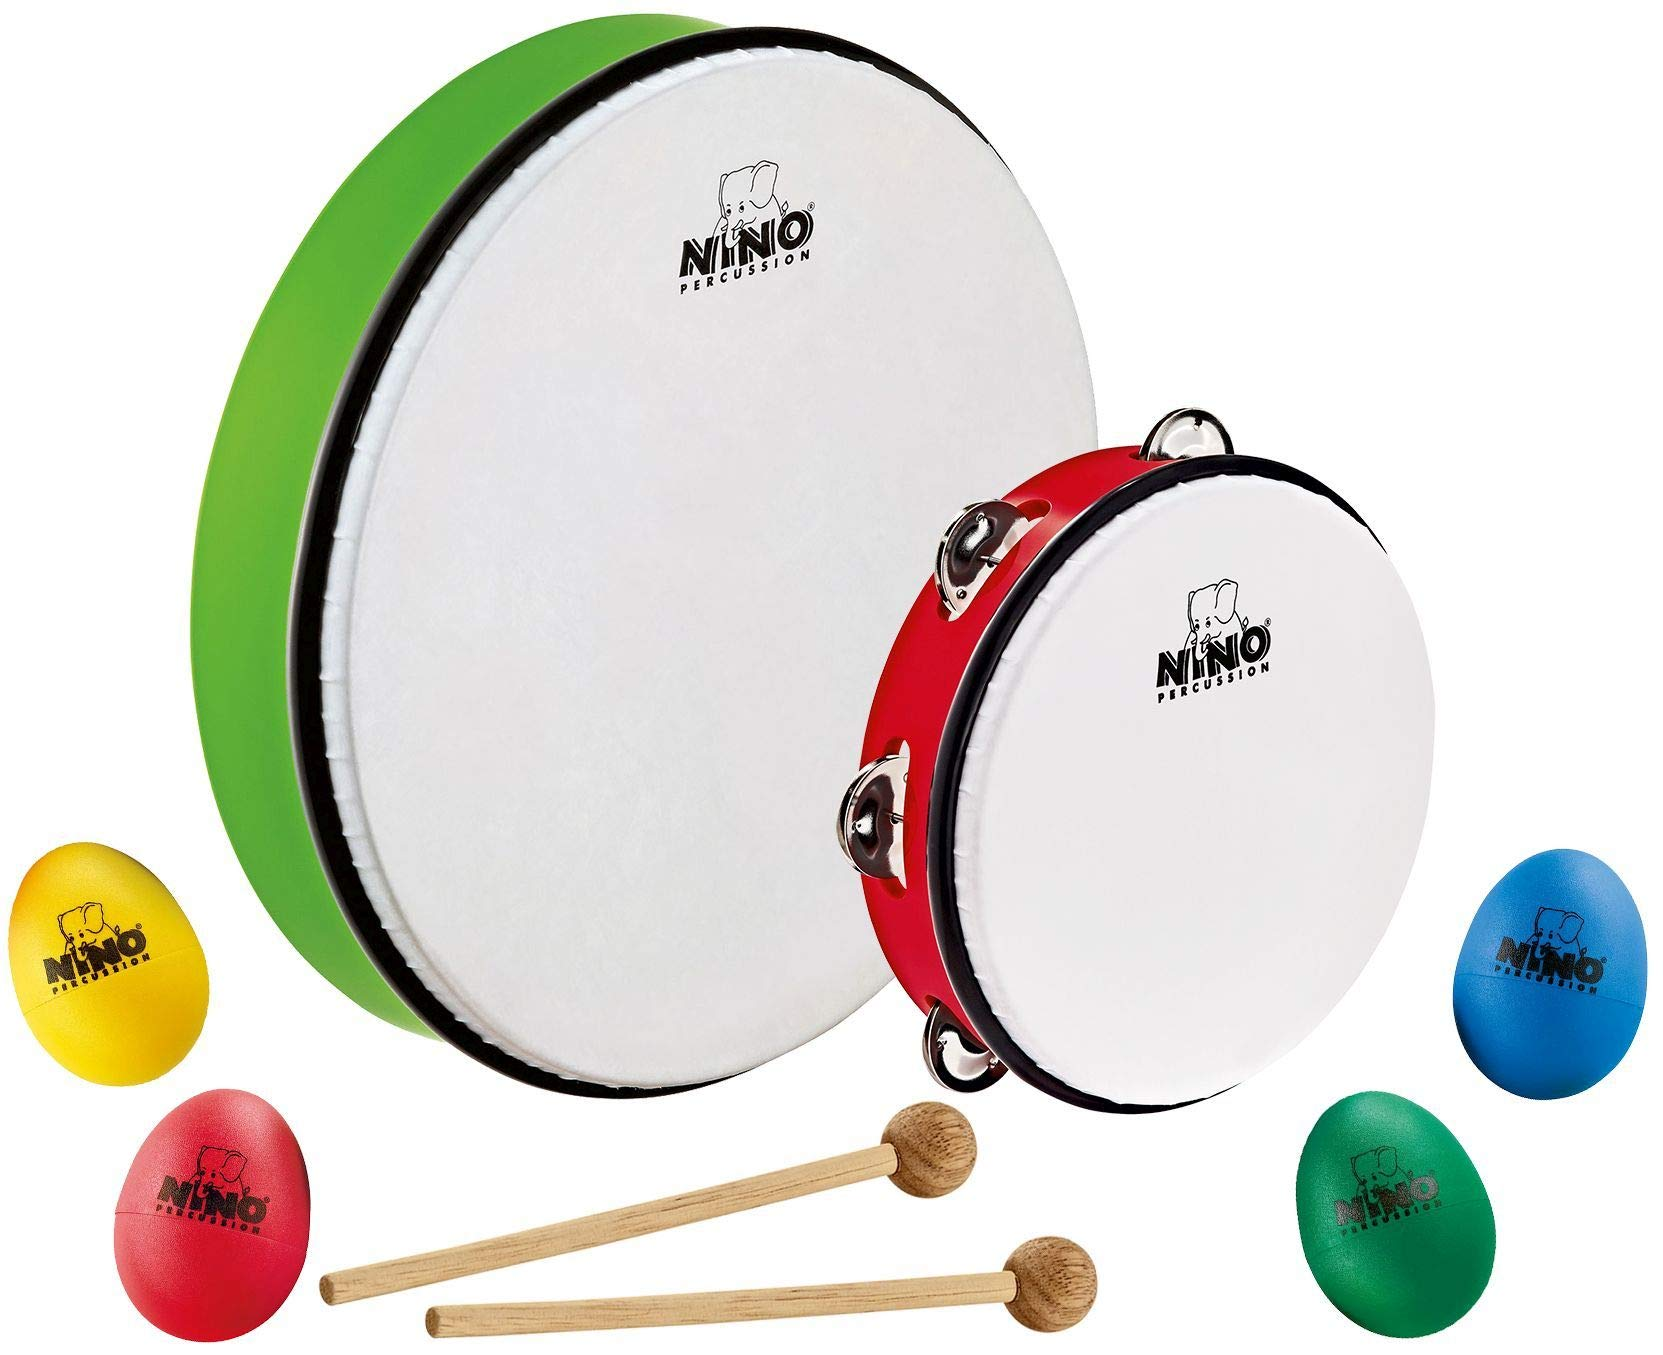 Nino Percussion Rhythm Set with 3 Pieces, Includes Egg Shakers, Tambourine and Hand Drum - NOT MADE IN CHINA - Perfect for Classroom Music, 2-YEAR WARRANTY, NP-4) by Nino Percussion